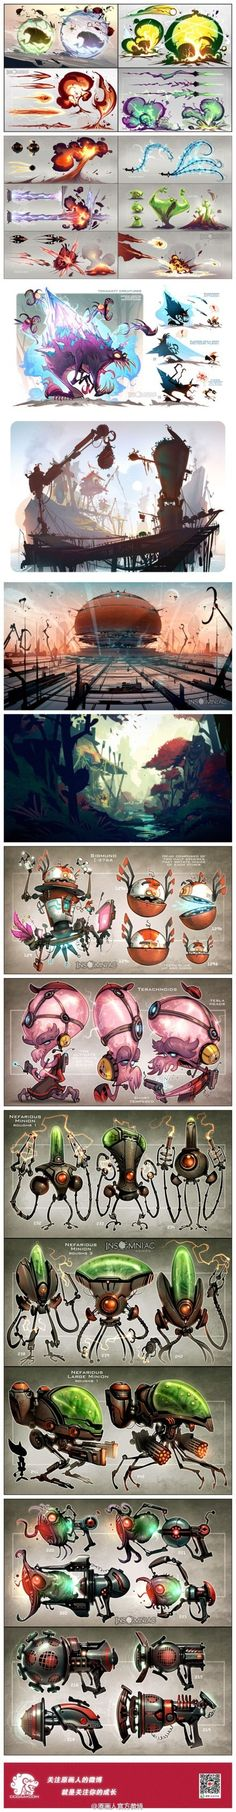 Creaturebox Ratchet and Clank Character Concept, Character Art, Concept Art, Animation Reference, Art Reference, Pixel Art, Magic Design, Magic Art, Drawing Techniques